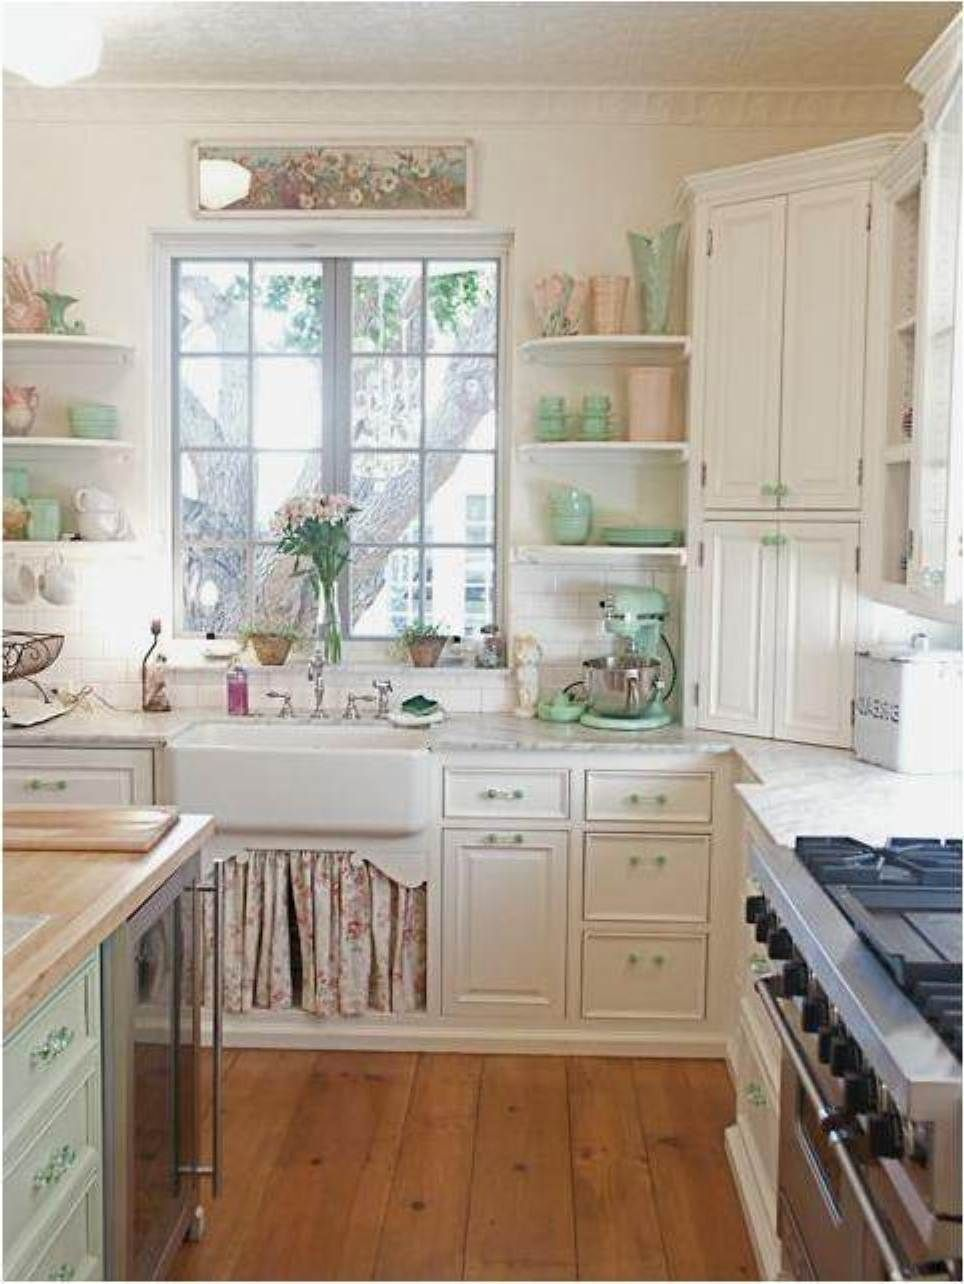 Amazing Cottage Style Kitchens | Better Home and Garden | kitchens ...